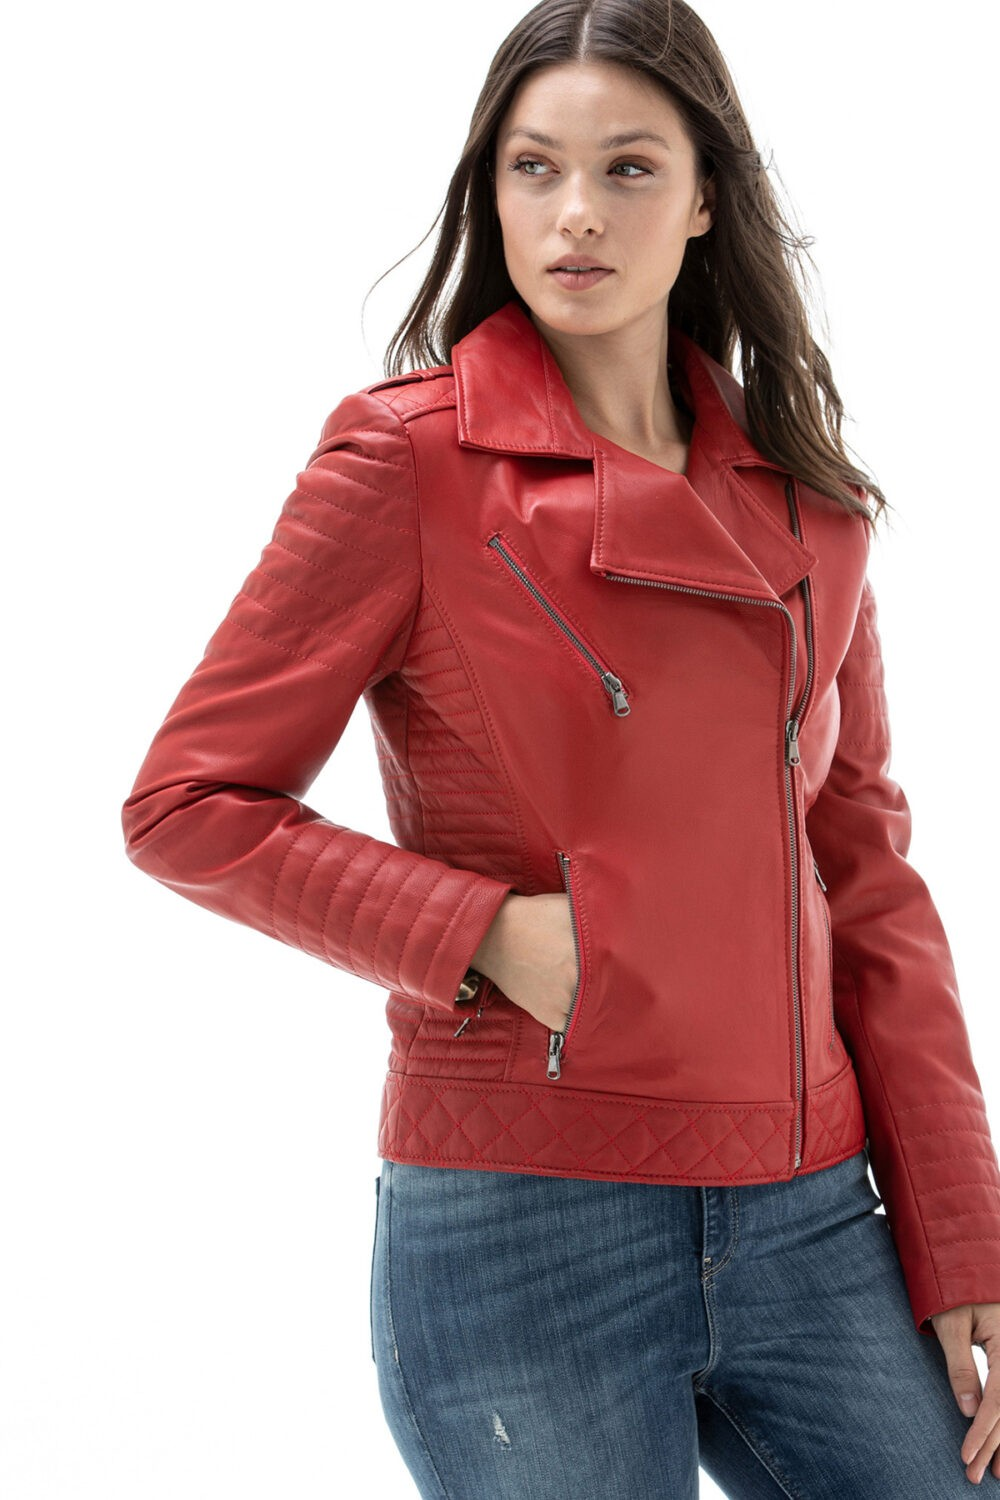 Paul Smith Red Leather Jacket